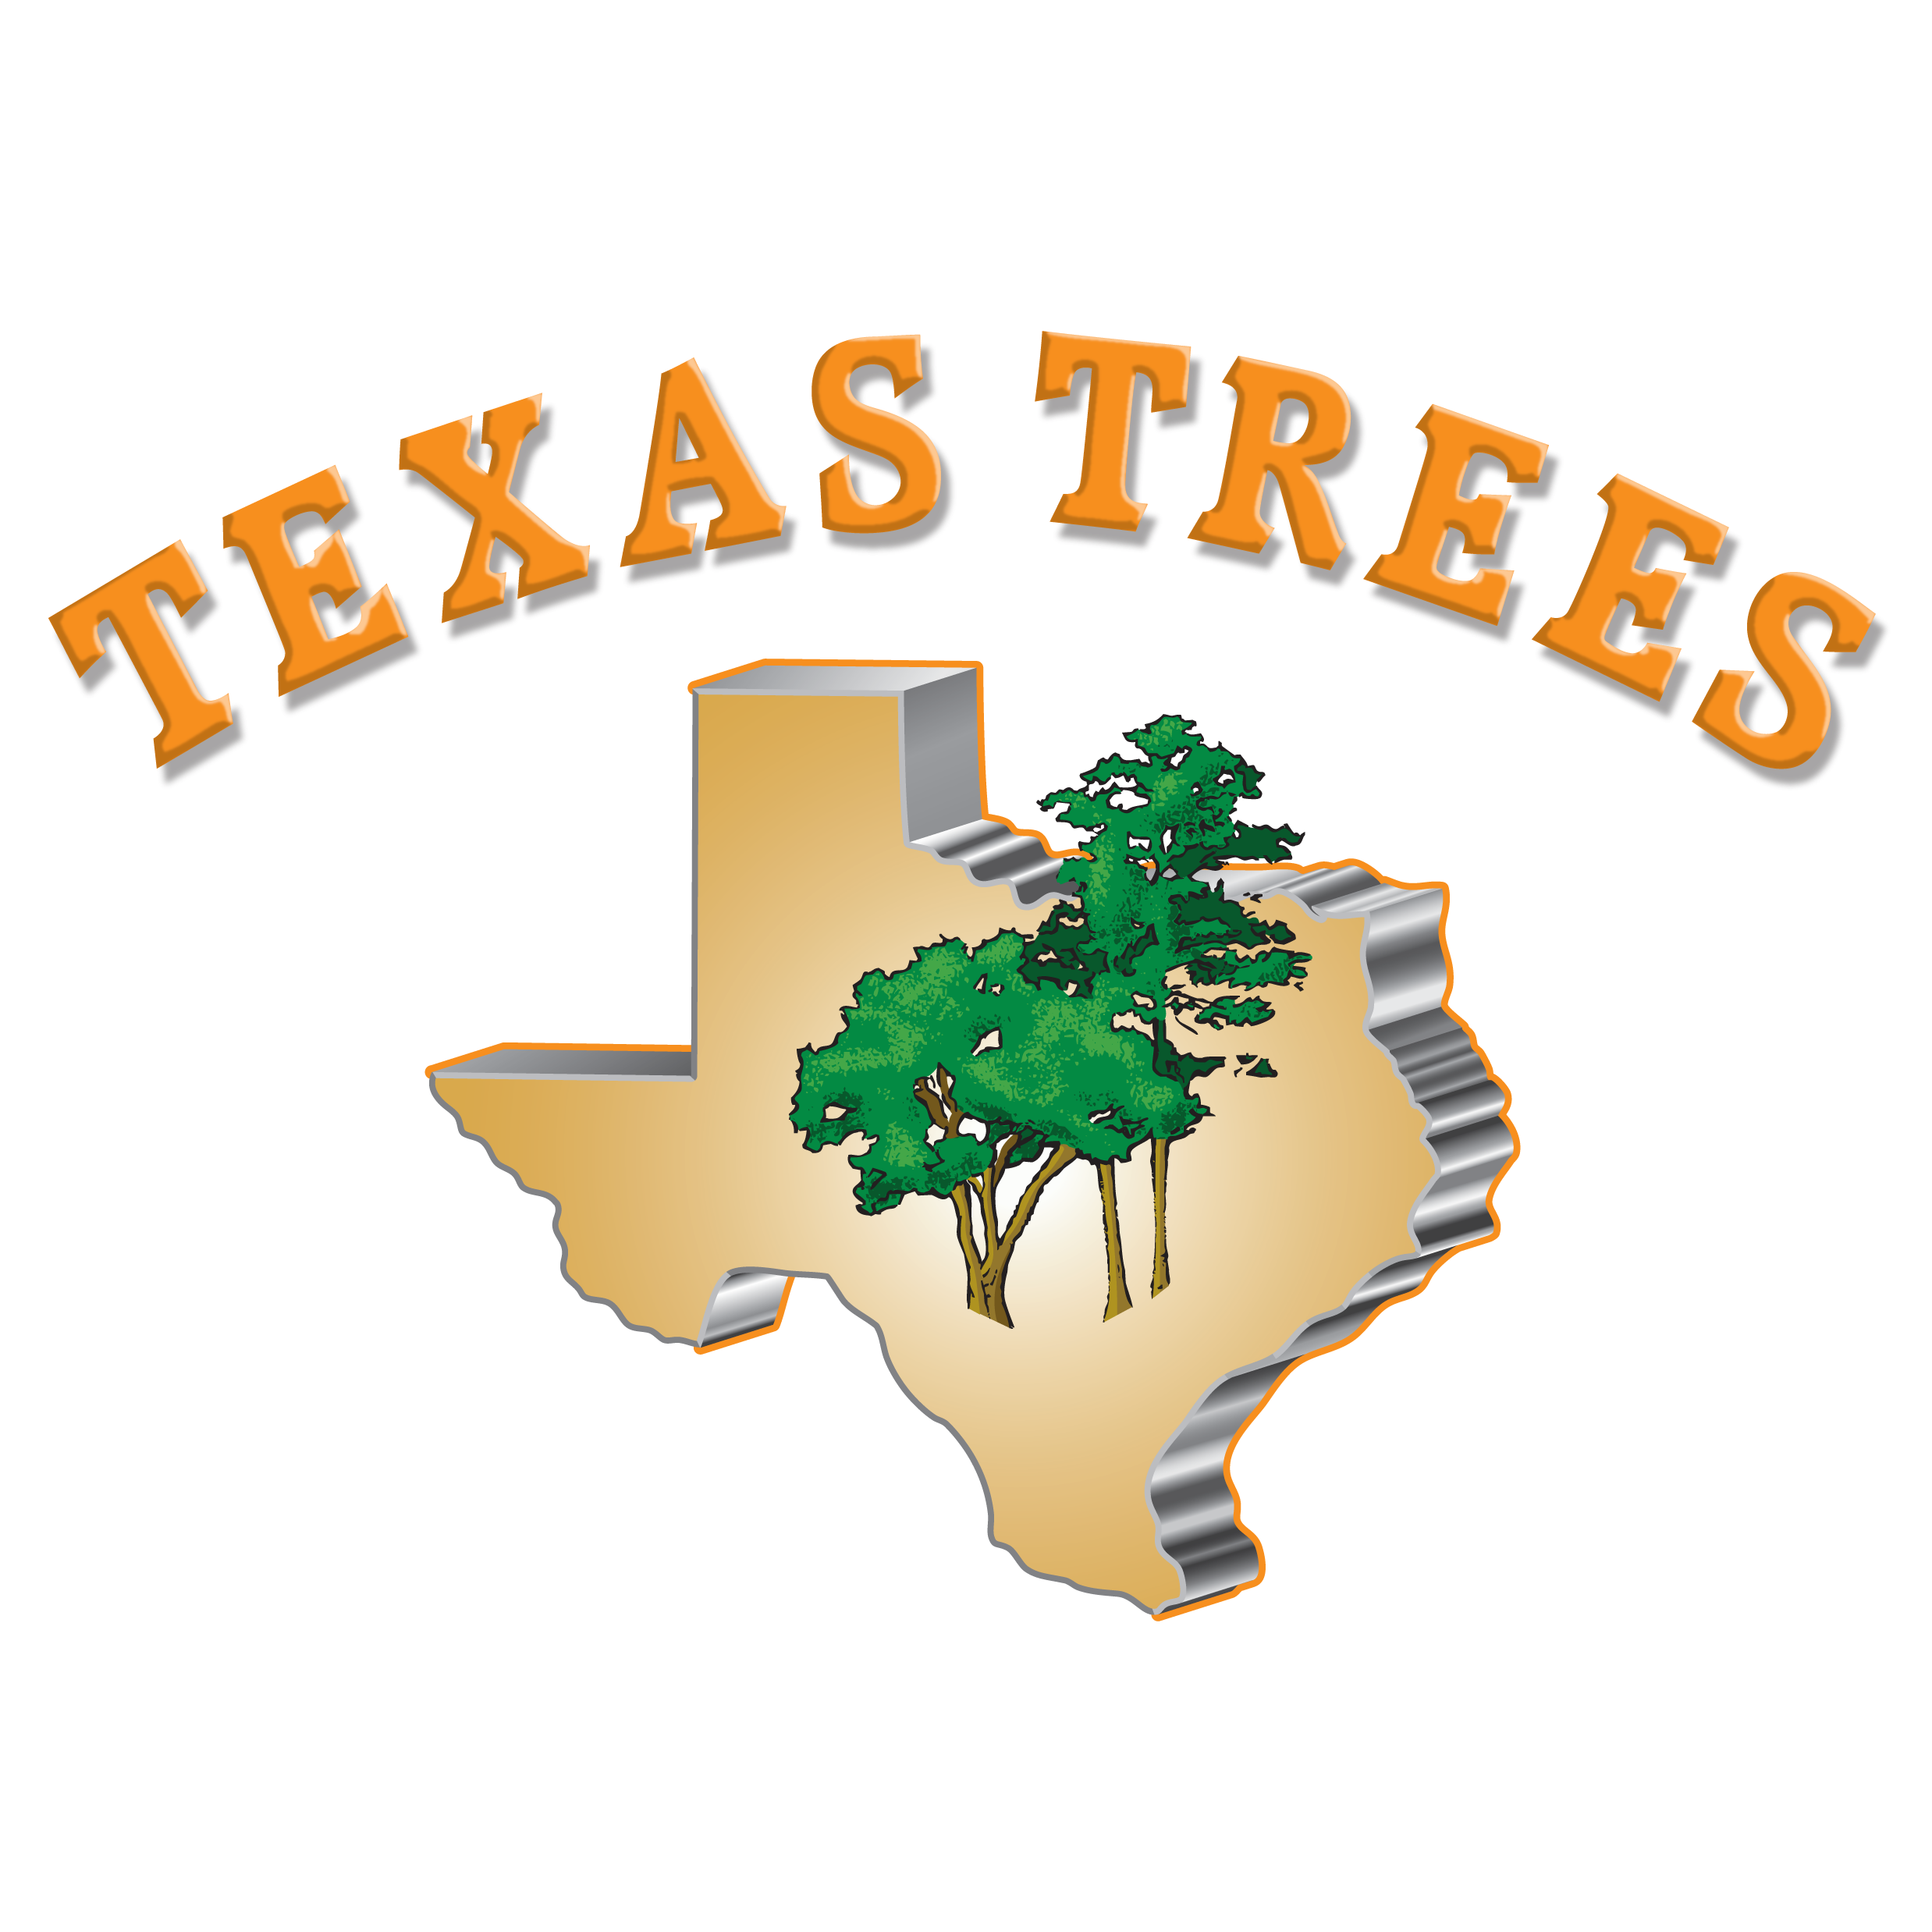 TEXAS TREES - San Antonio, TX - Tree Services